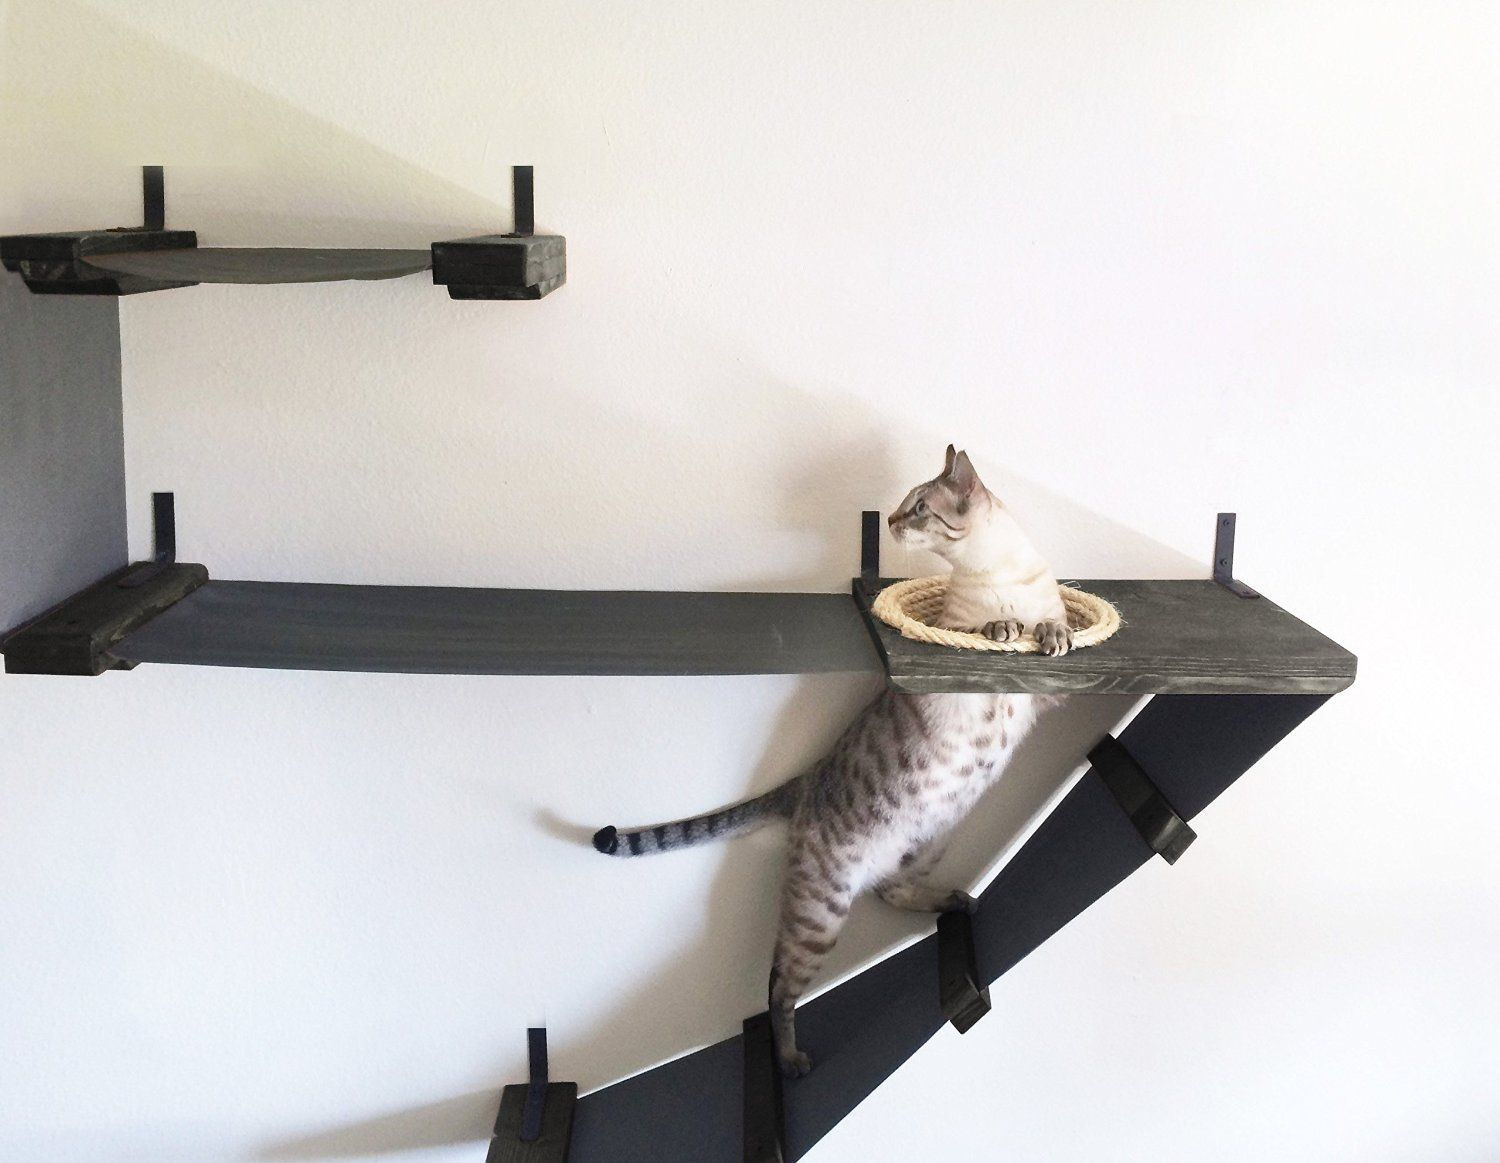 7 Creative Cat Wall Shelves To Transform Your Home Into A Chic Cat